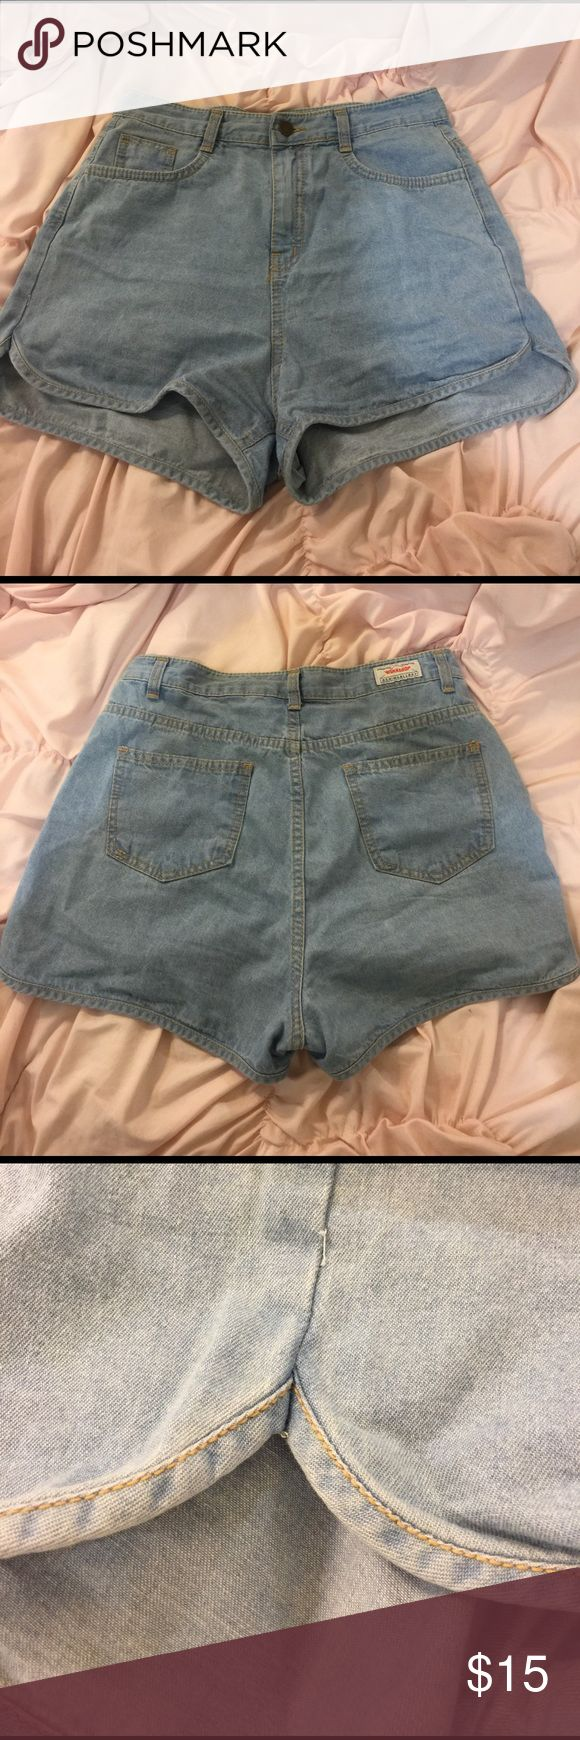 High Waist Light Denim Dolphin Shorts Worn Once. Brand is mixxmix which is a Korean online retailer. Sizes run smaller for Asian sizing so this is a size M even though the tag says L mixxmix Shorts Jean Shorts